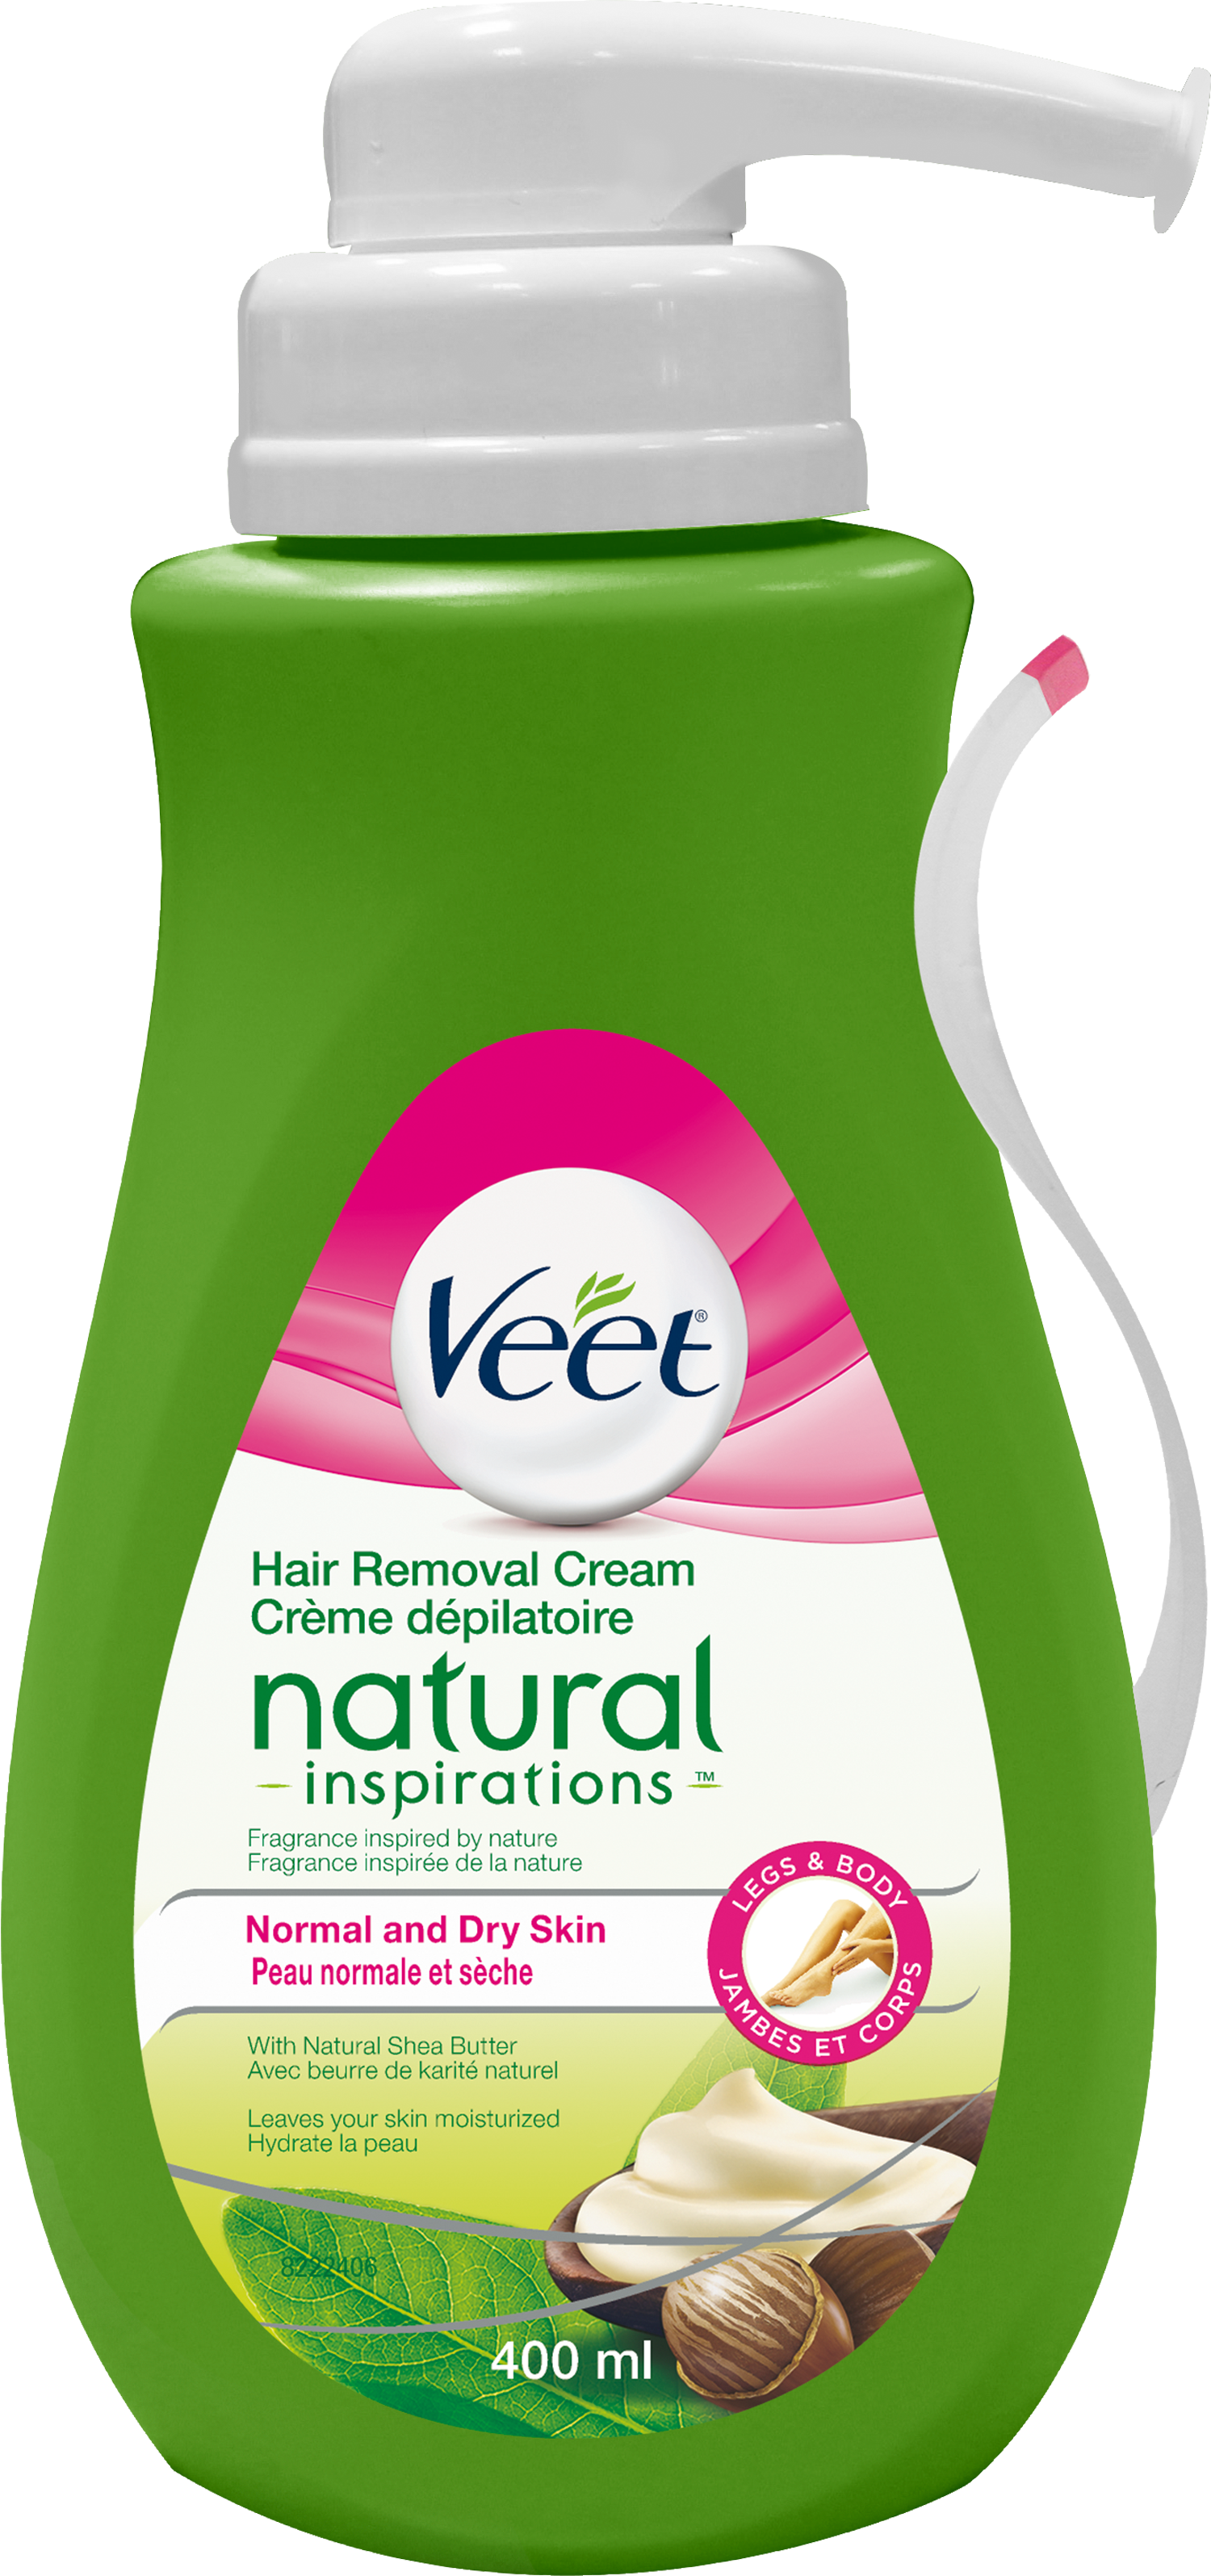 Veet Natural Inspirations Hair Removal Cream Normal Dry Skin